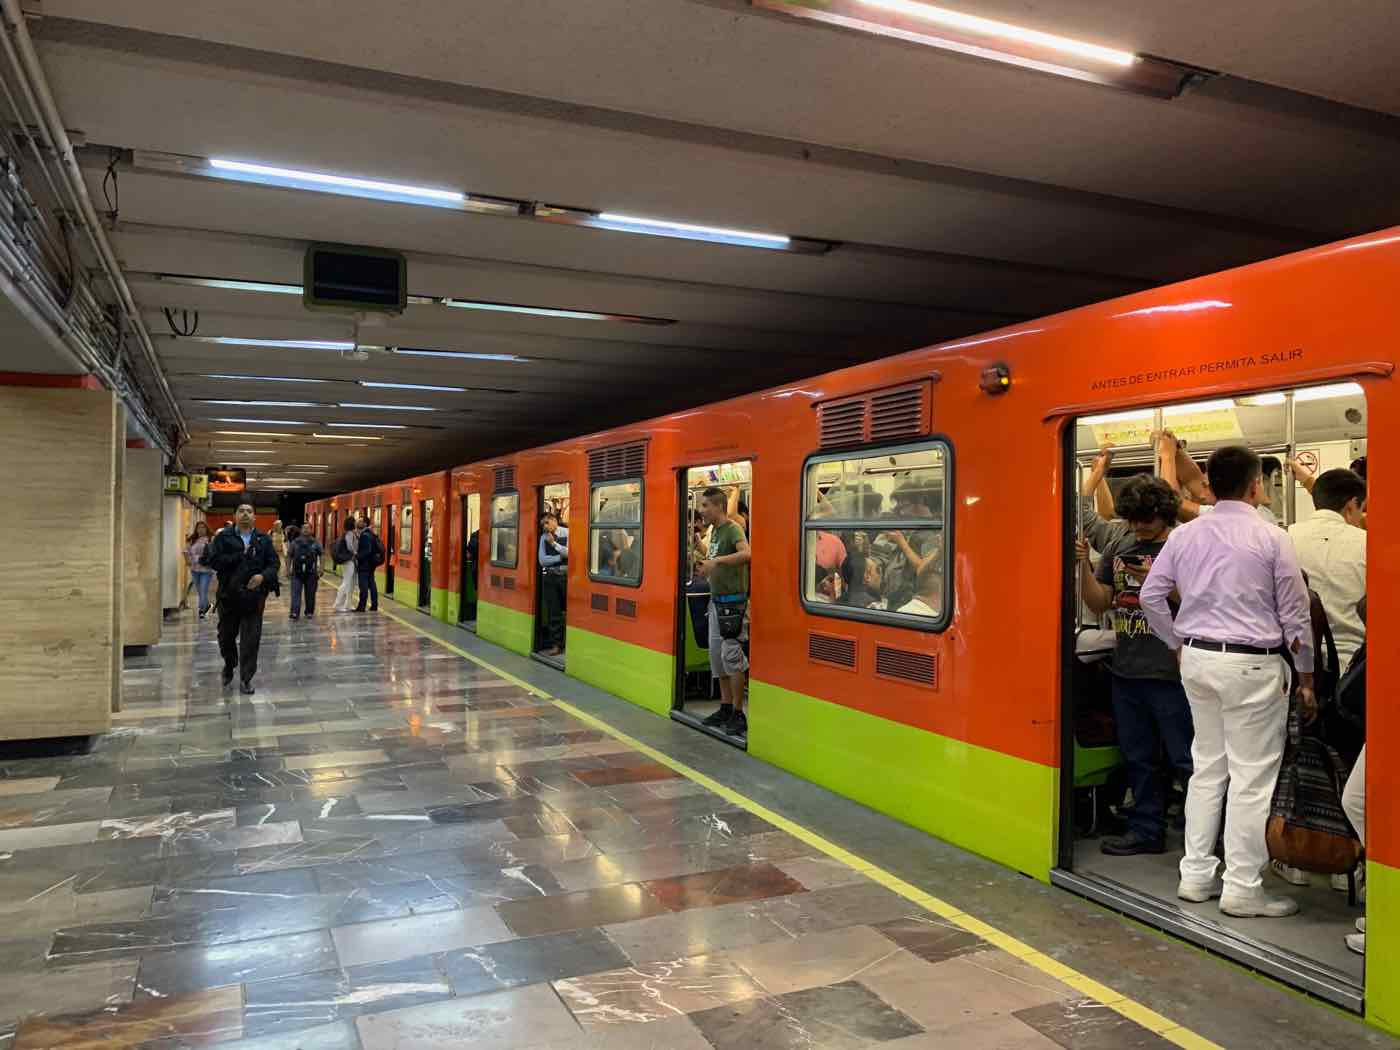 mexico city safety tips metro